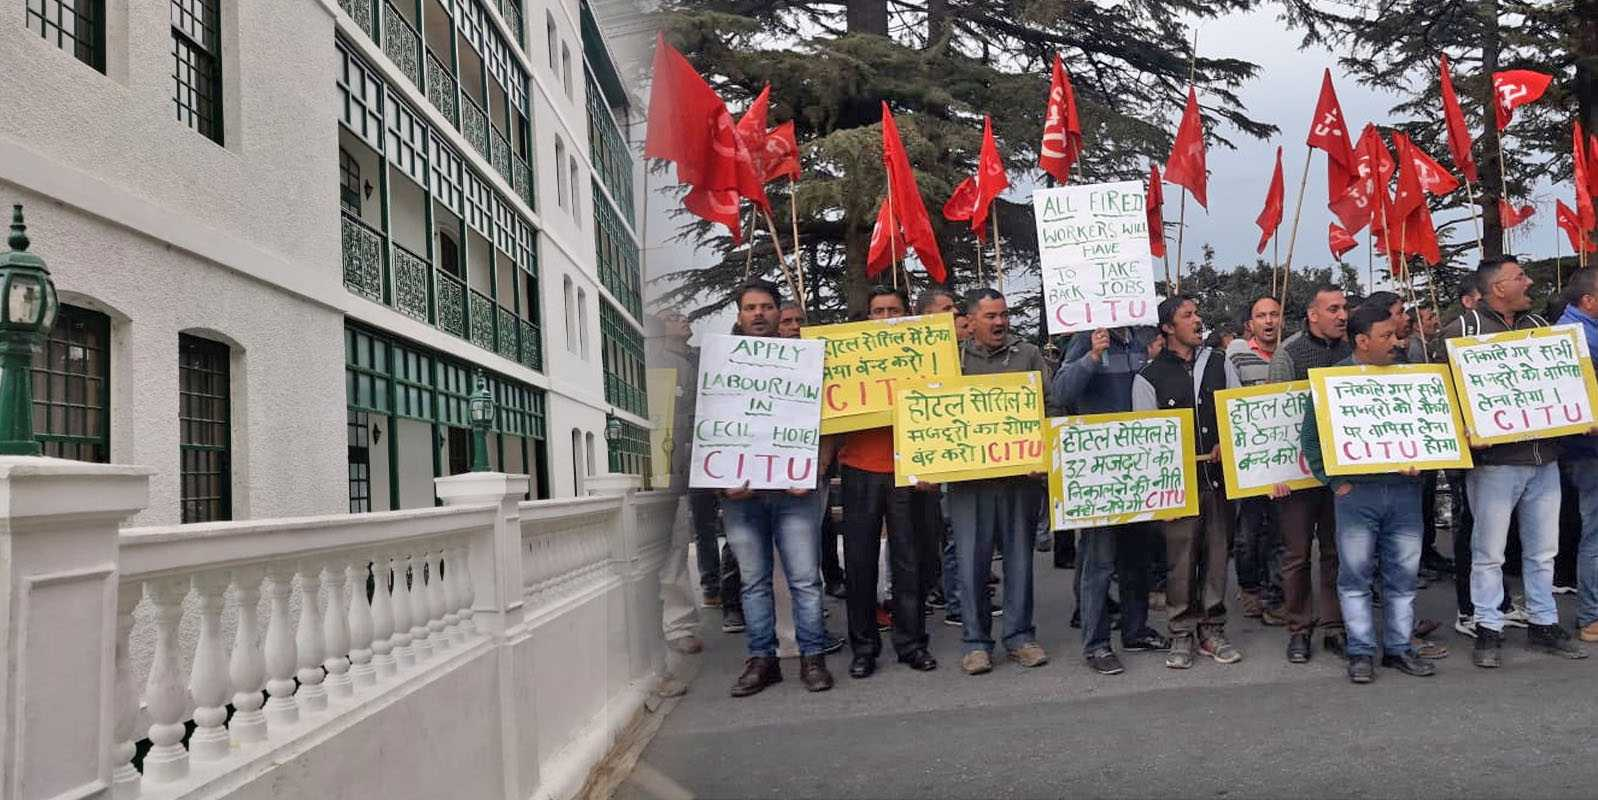 Cecil Hotel Shimla Fires Workers